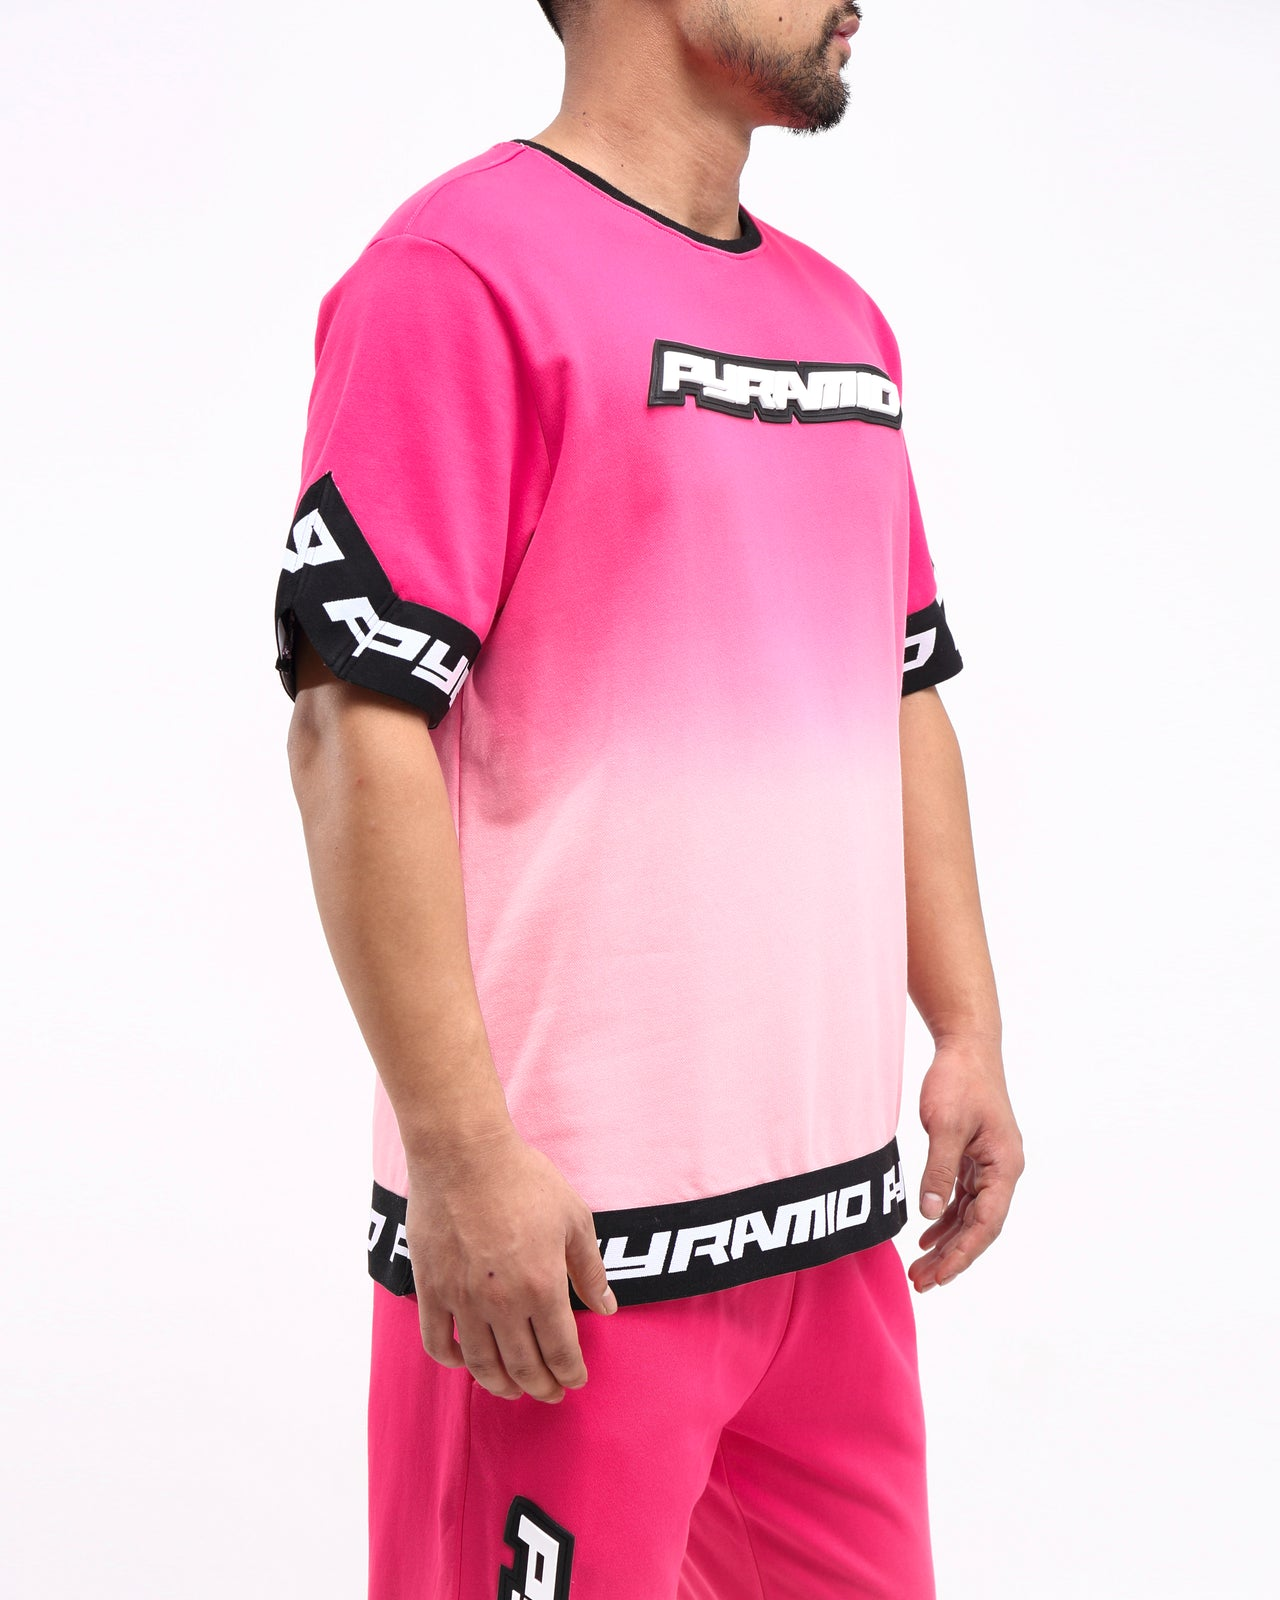 DIP DYE PASTEL SHOOTING JERSEY - Color: PINK